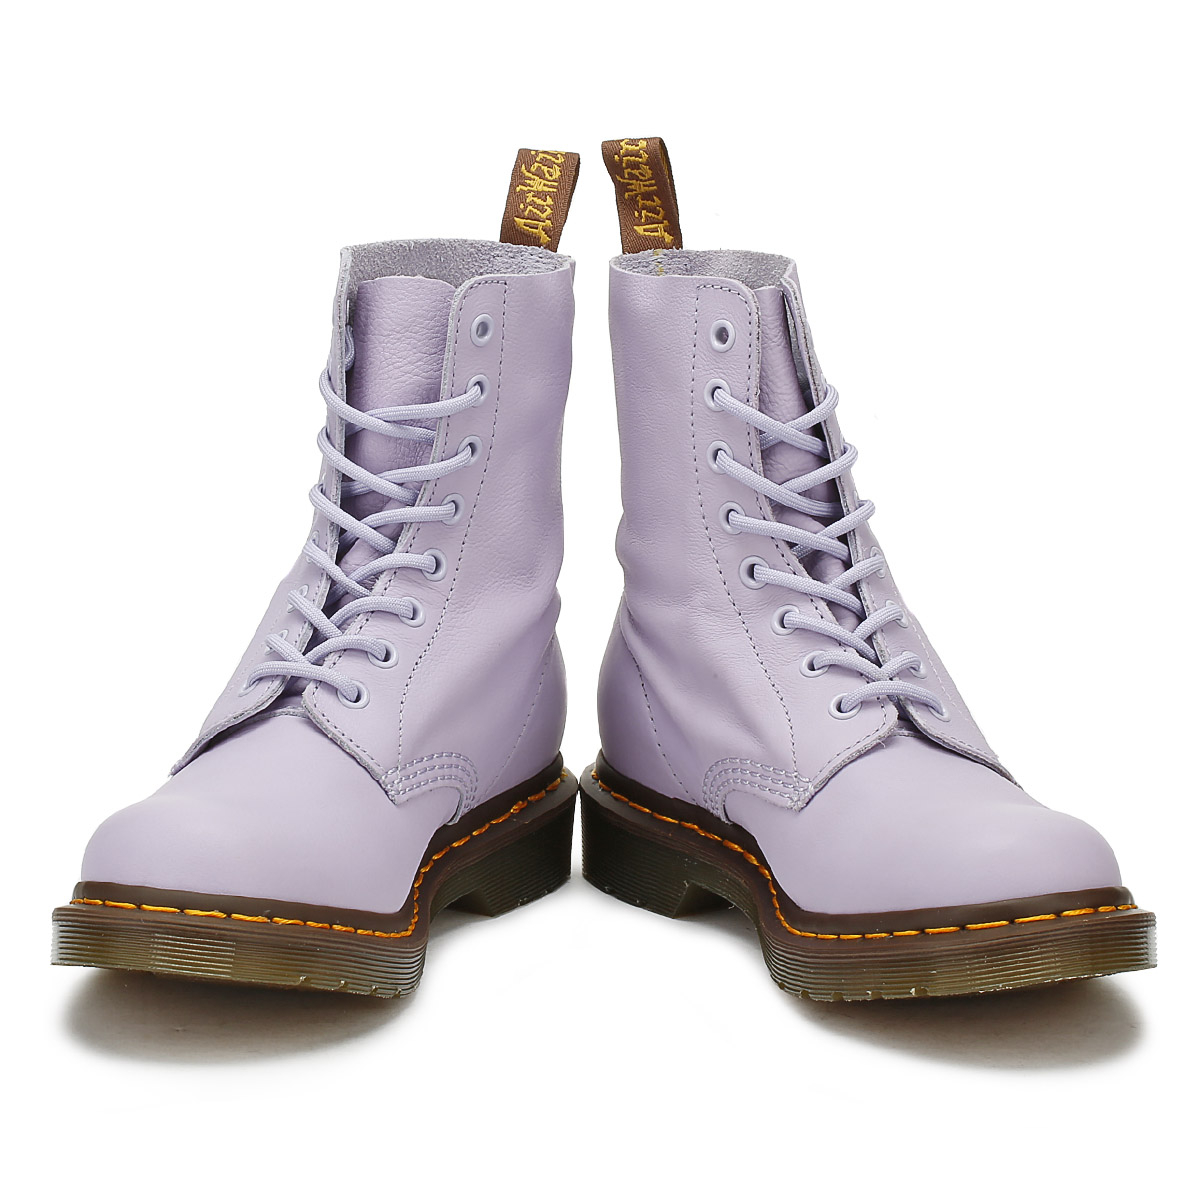 Dr-Martens-Womens-Pascal-Boots-Purple-Heather-Leather-Lace-Up-Ankle-Shoes